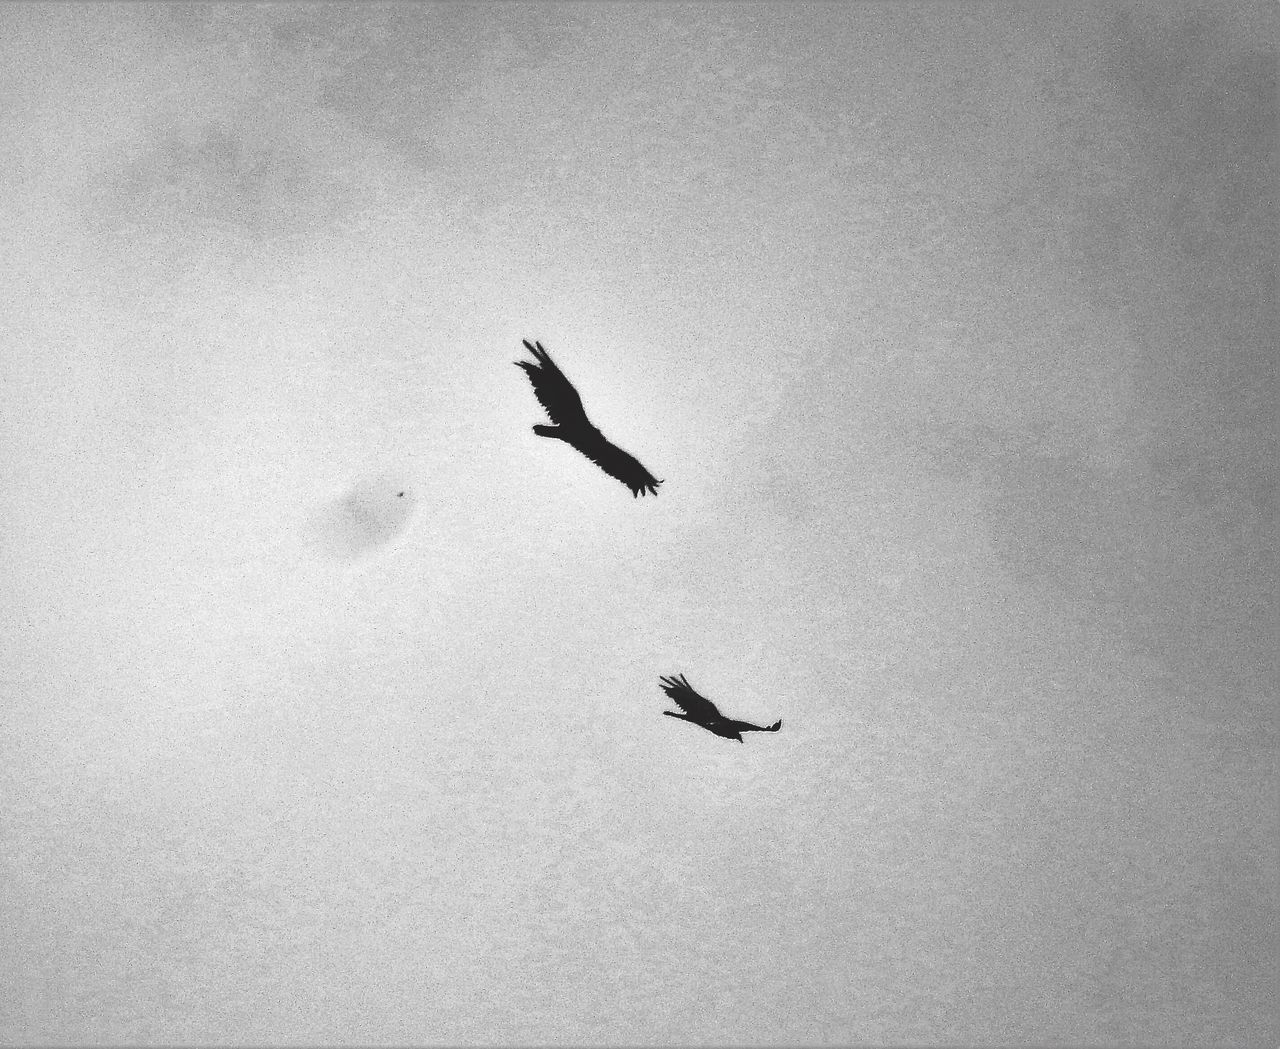 Hawks Circling Hawks Circling EyeEm Gallery Eyeem Market Eyeem Community Eyeem Photography Flying Above Nature Photography Nature_collection Harrisburg, Pa Black And White Collection  Animals Wildlife & Nature EyeEm Best Shots - Black + White Monochrome Photography